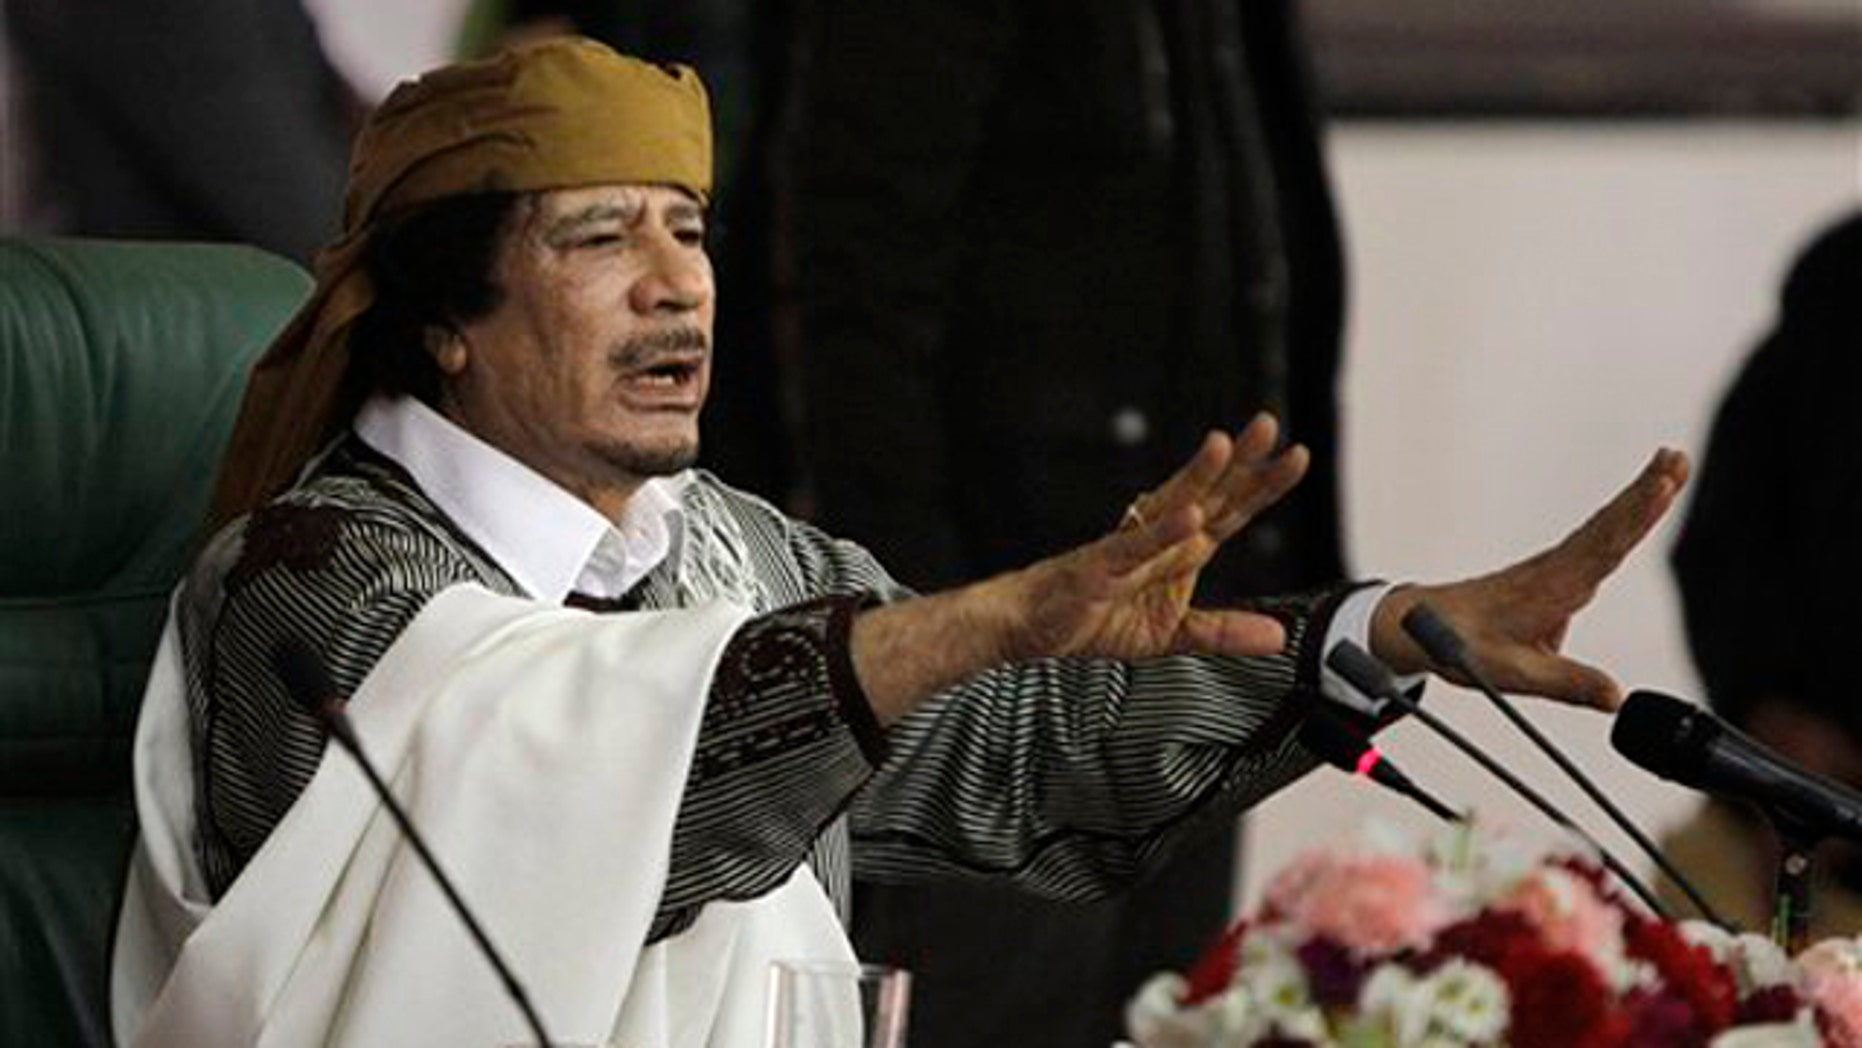 Libyan leader Muammar al-Qaddafi is shown in Tripoli on March 2.